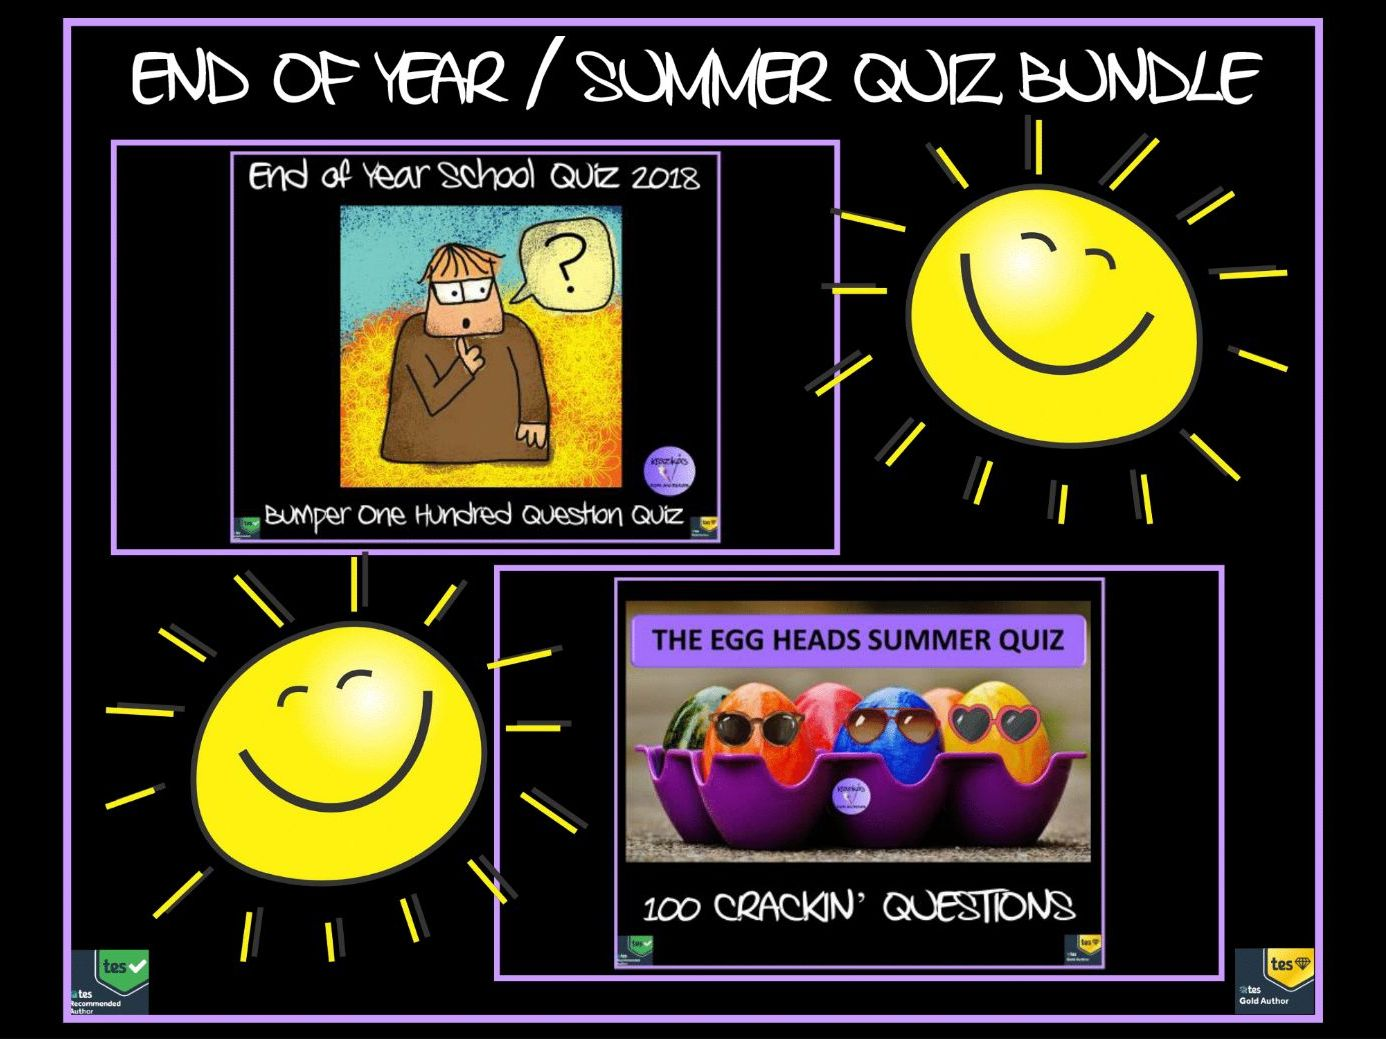 Quiz: End of Year Quiz / Summer Quiz Bundle